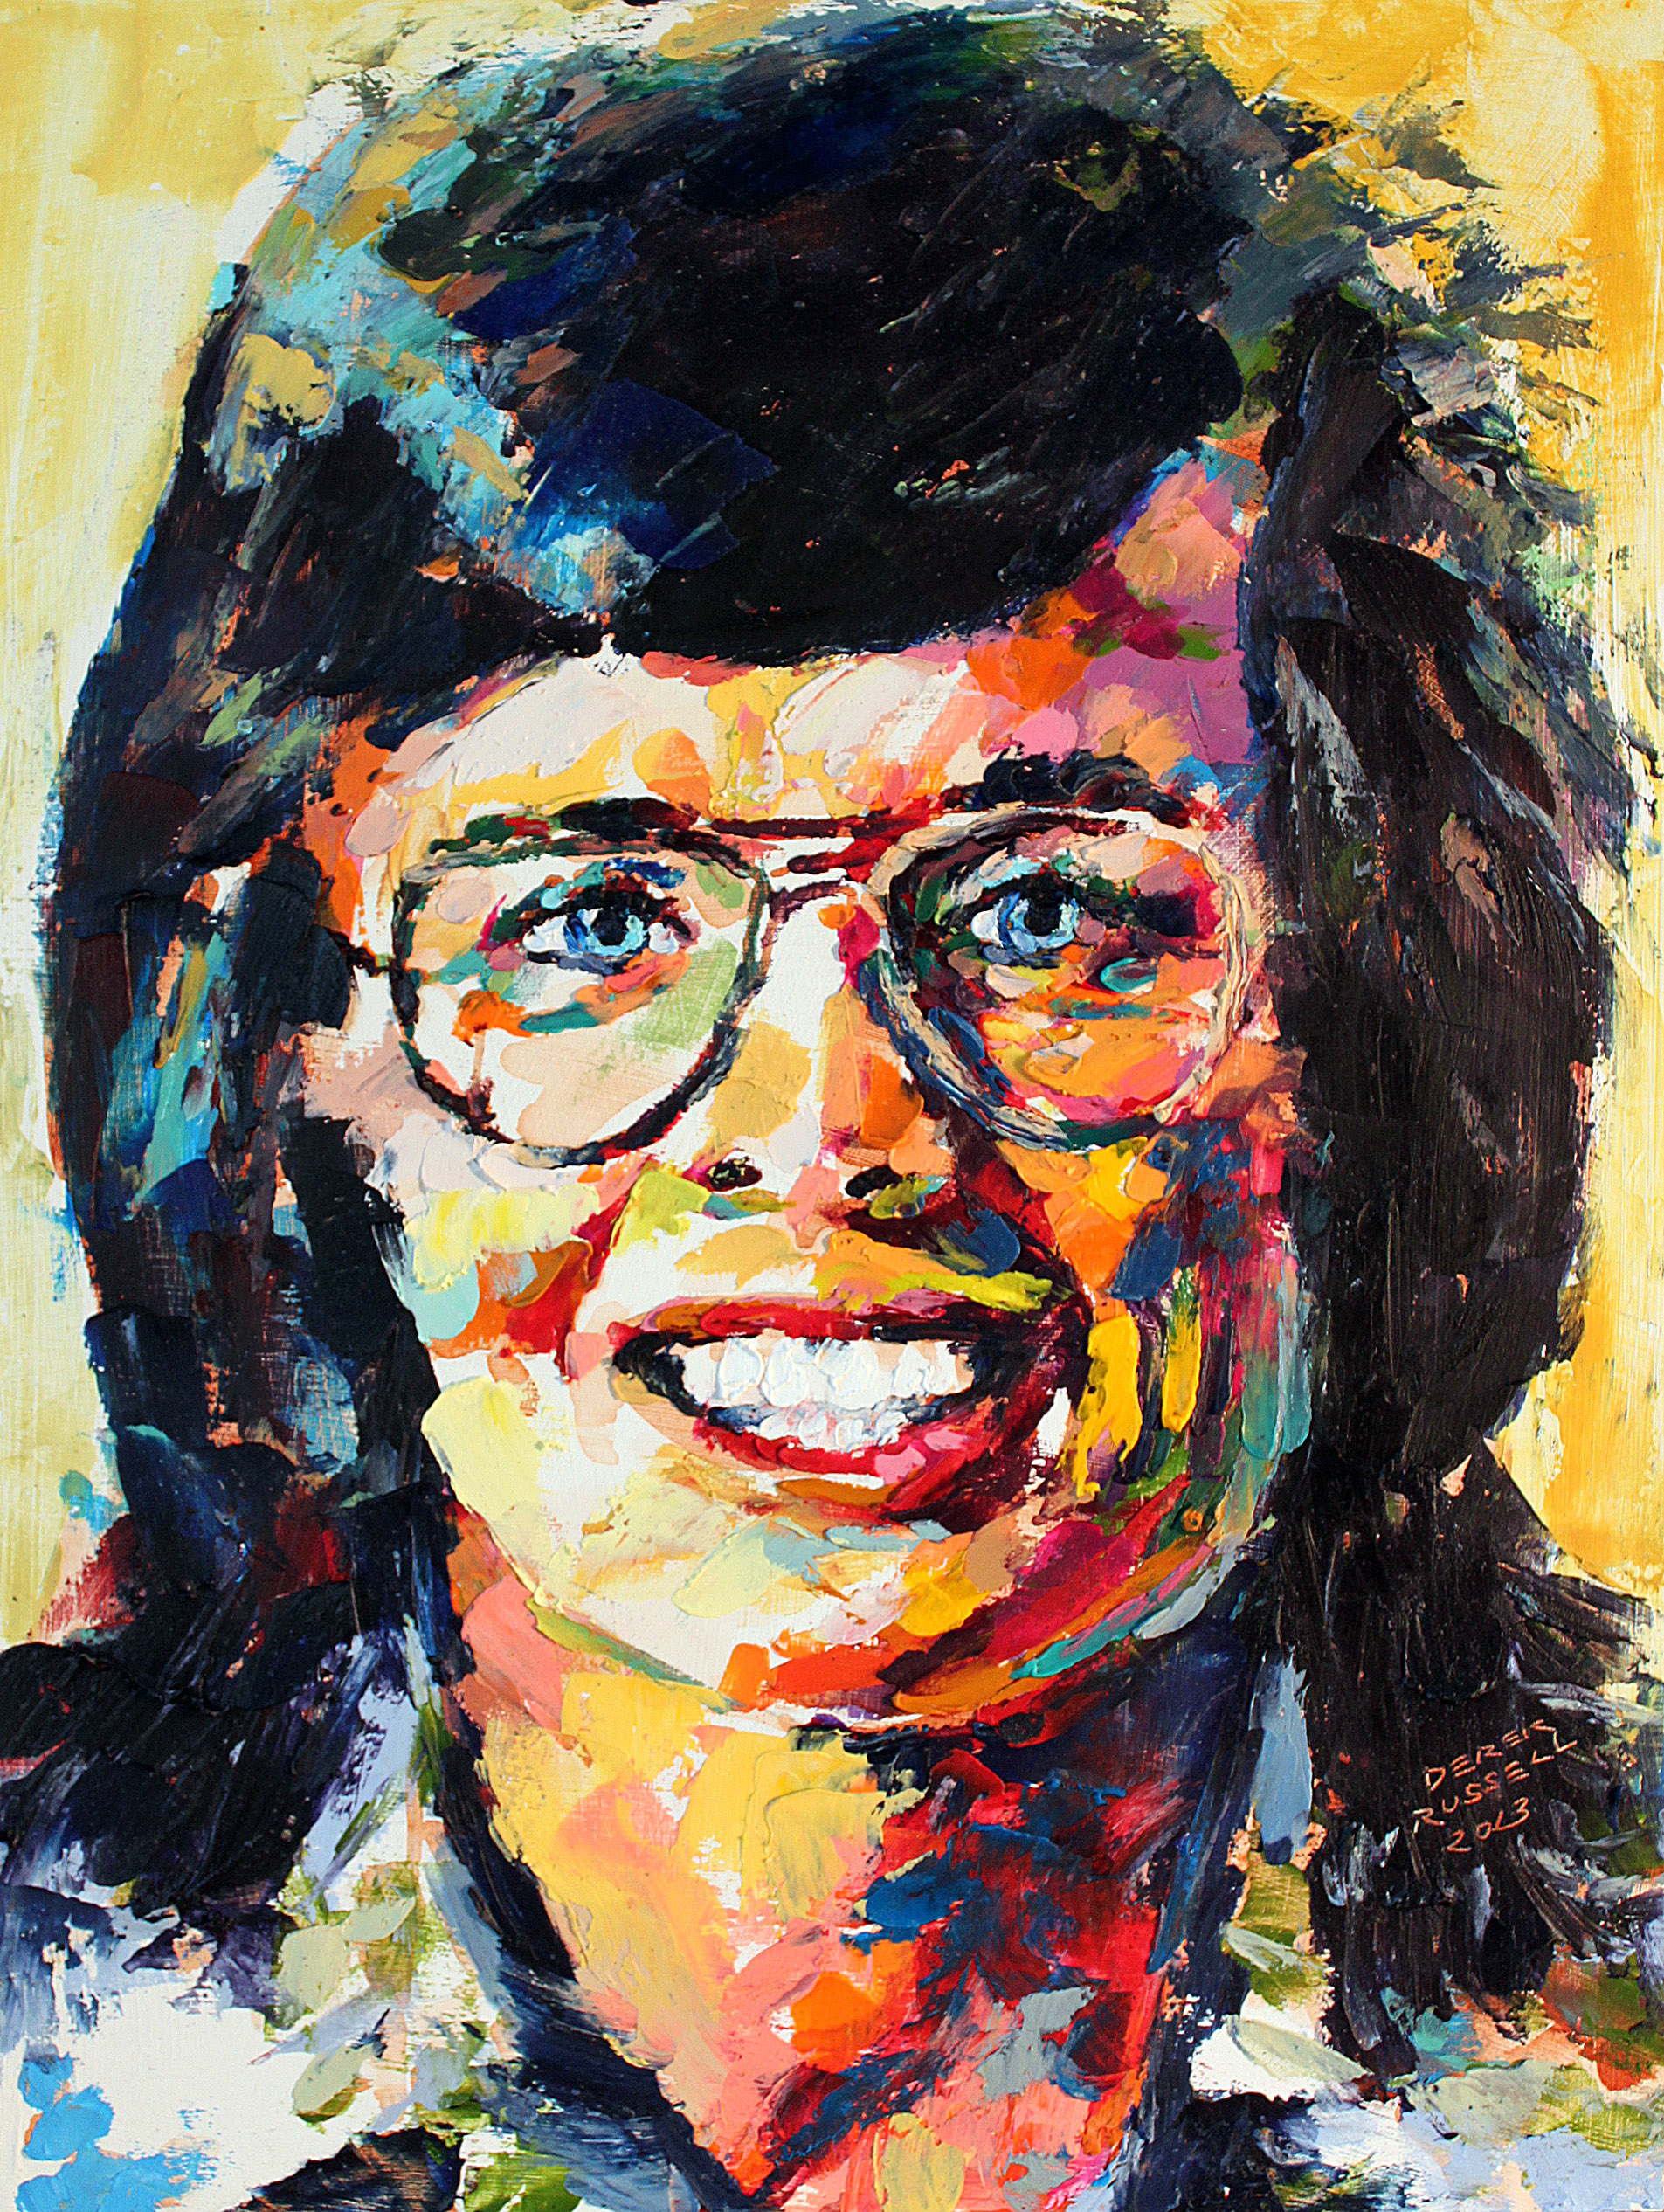 Billie Jean King Original Acrylic & Oil Portrait Painting by Artist Derek Russell 2013.jpg